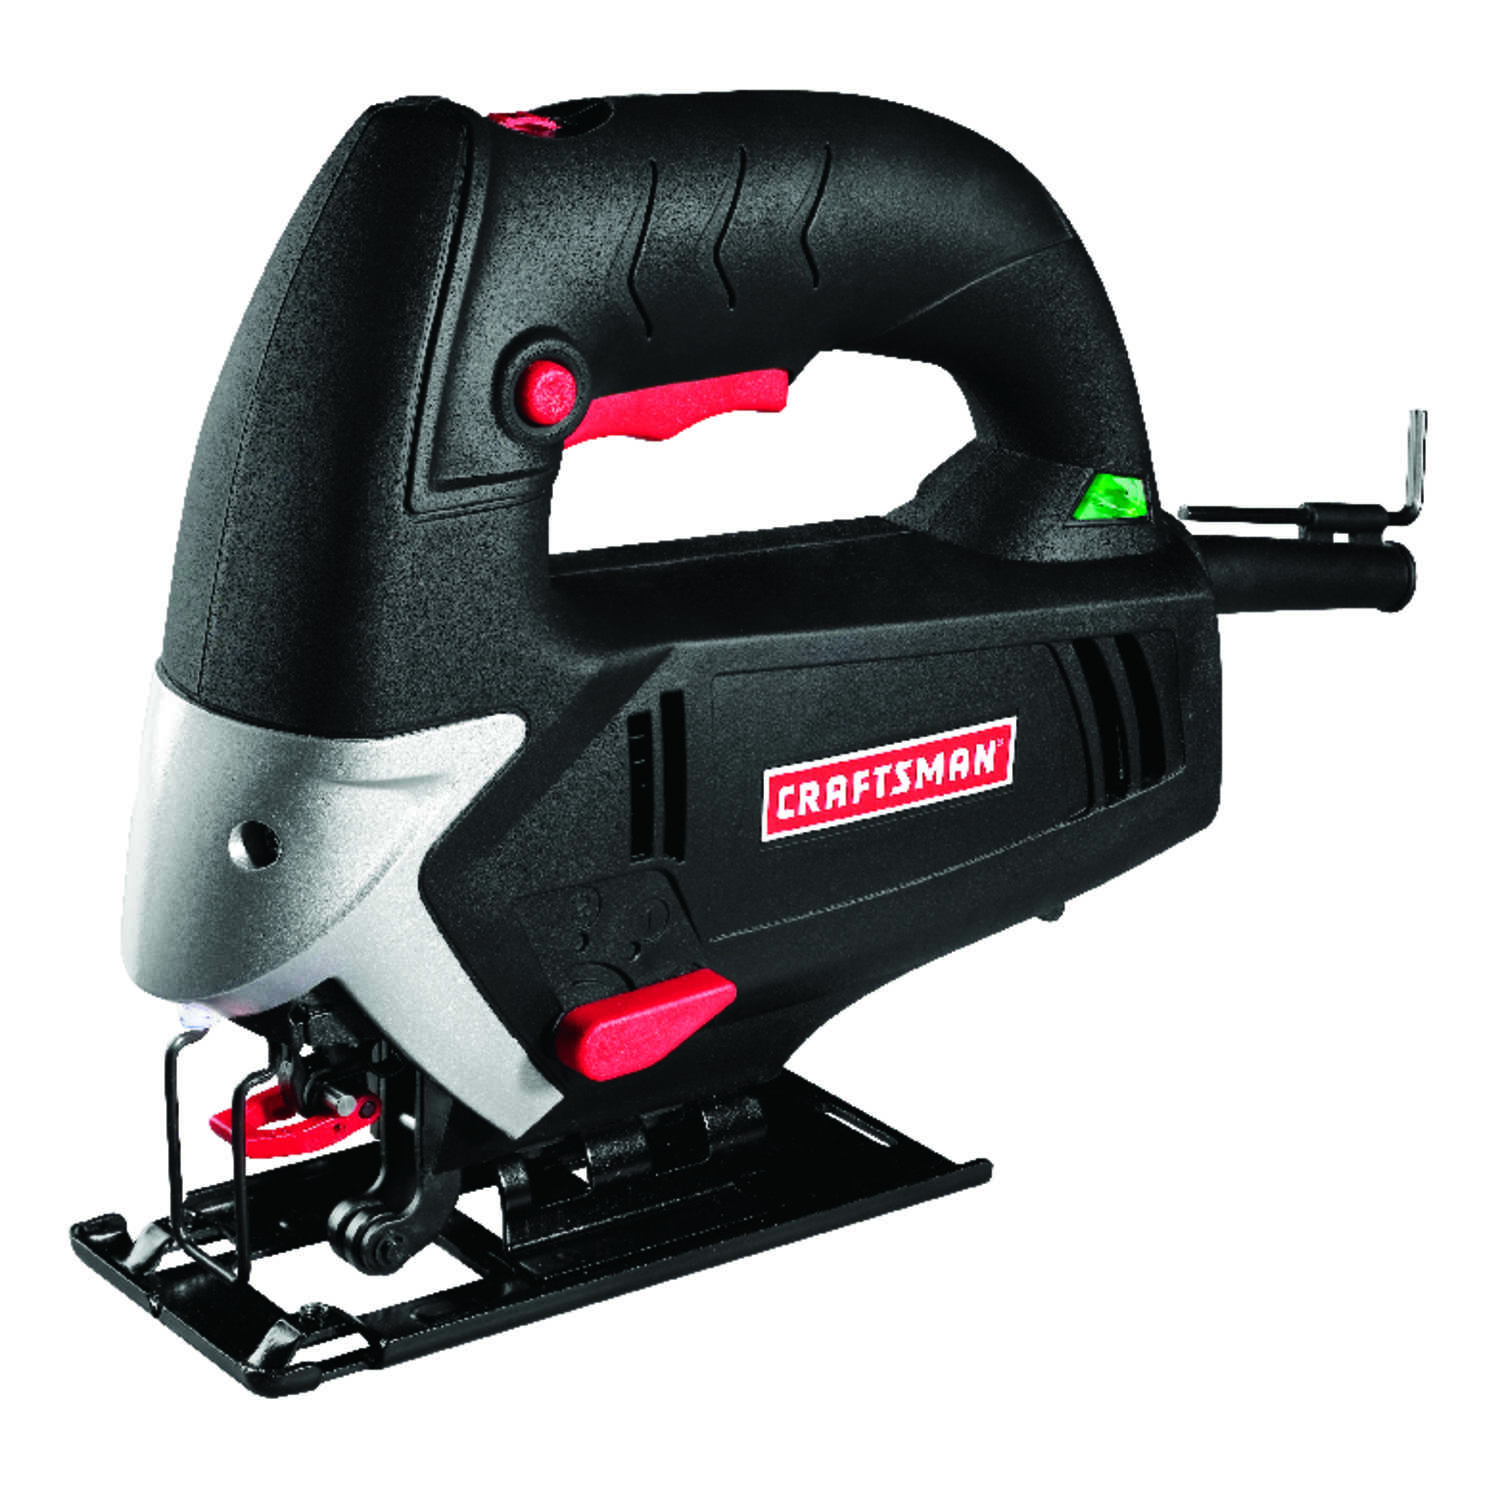 Craftsman  11/16 in. Corded  Keyless 5 amps 3000 spm Jig Saw